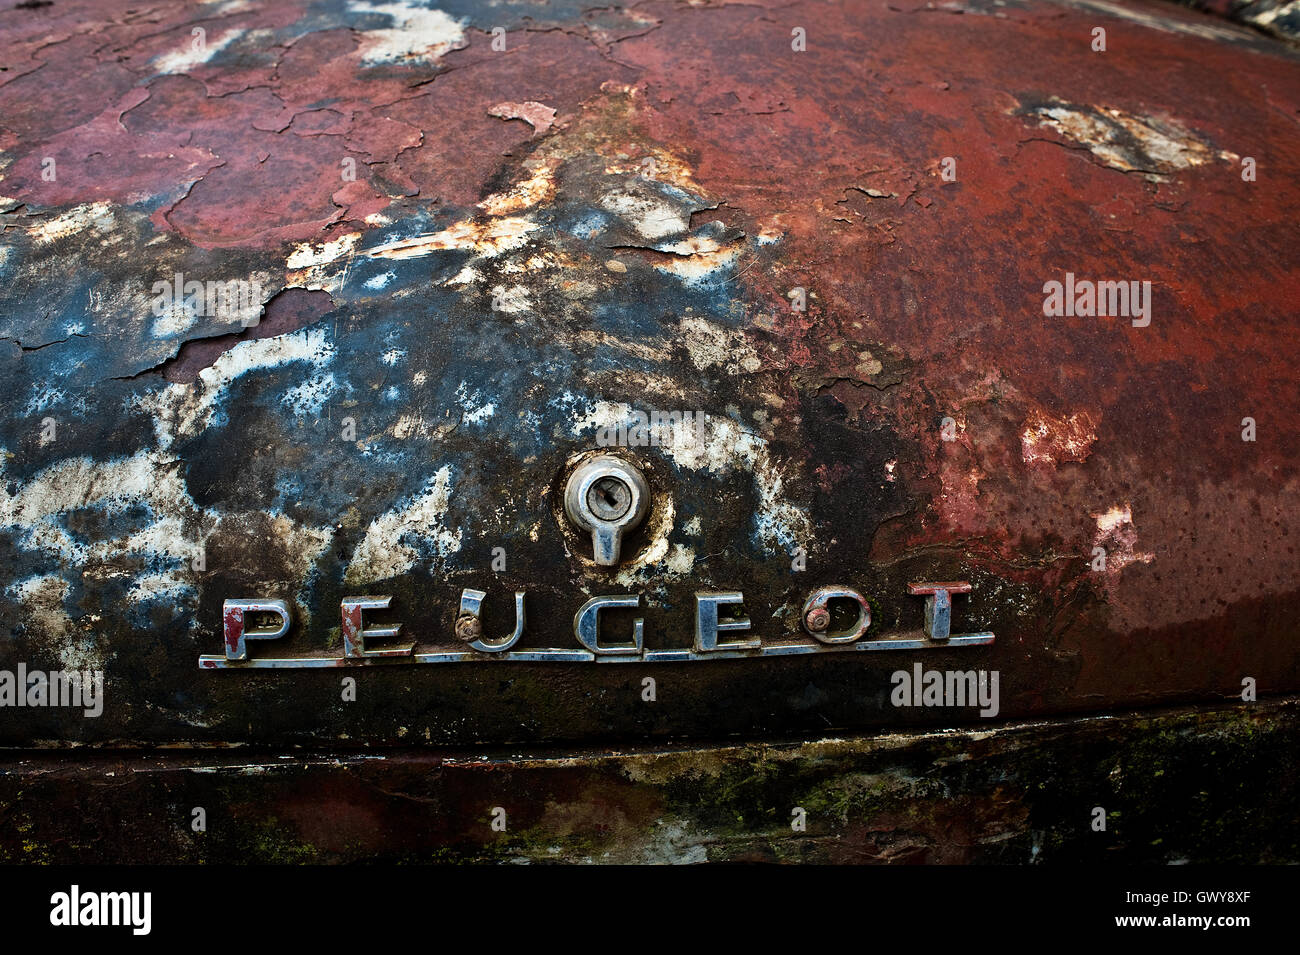 Rear cover of a Peugeot 404 damaged by rust,...( Madagascar) - Stock Image